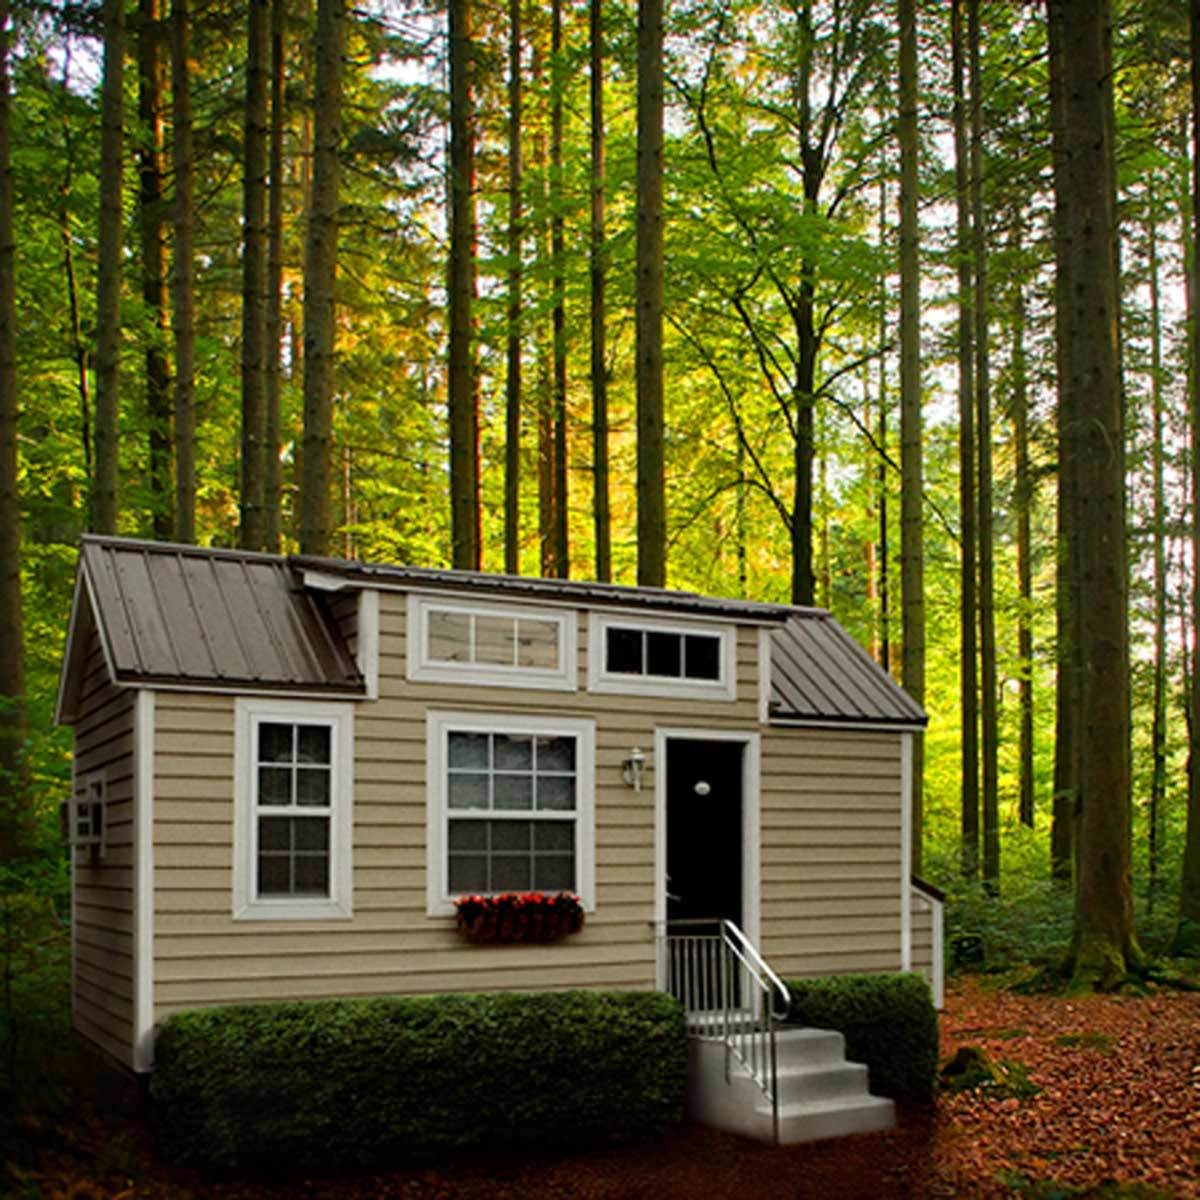 The 15 Best Tiny Home Models to Buy After Retirement